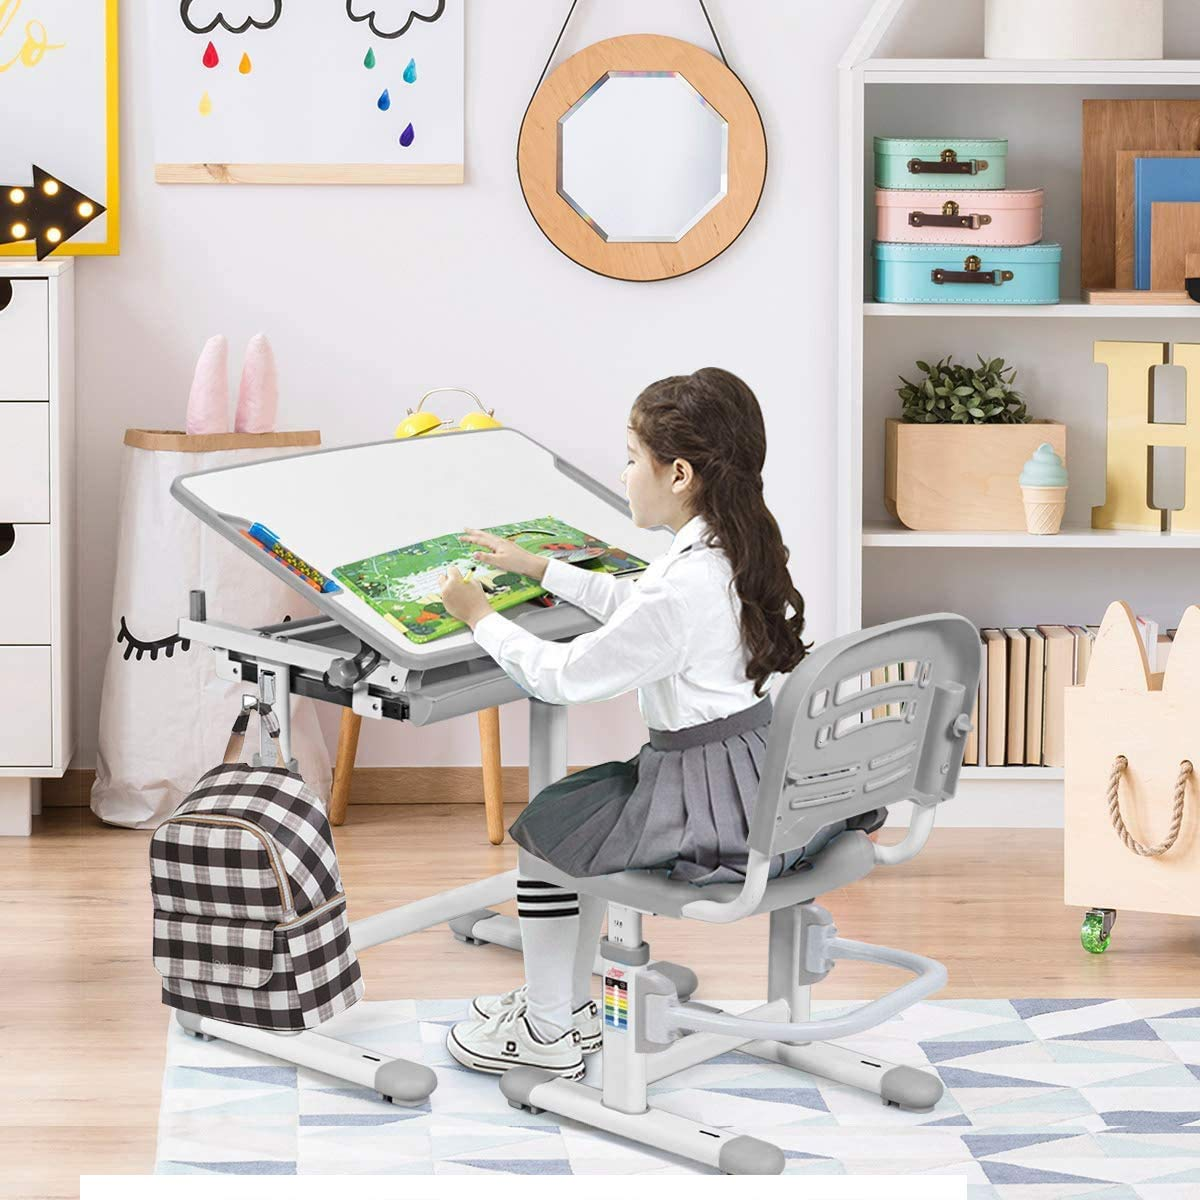 Pencil Case 40/° Tilt Desktop for Boys Girls Bookstand Pink Height Adjustable Children School Student Learning Study Desk Chair Set w//Pull Out Drawer Binrrio Kids Table and Chair Set